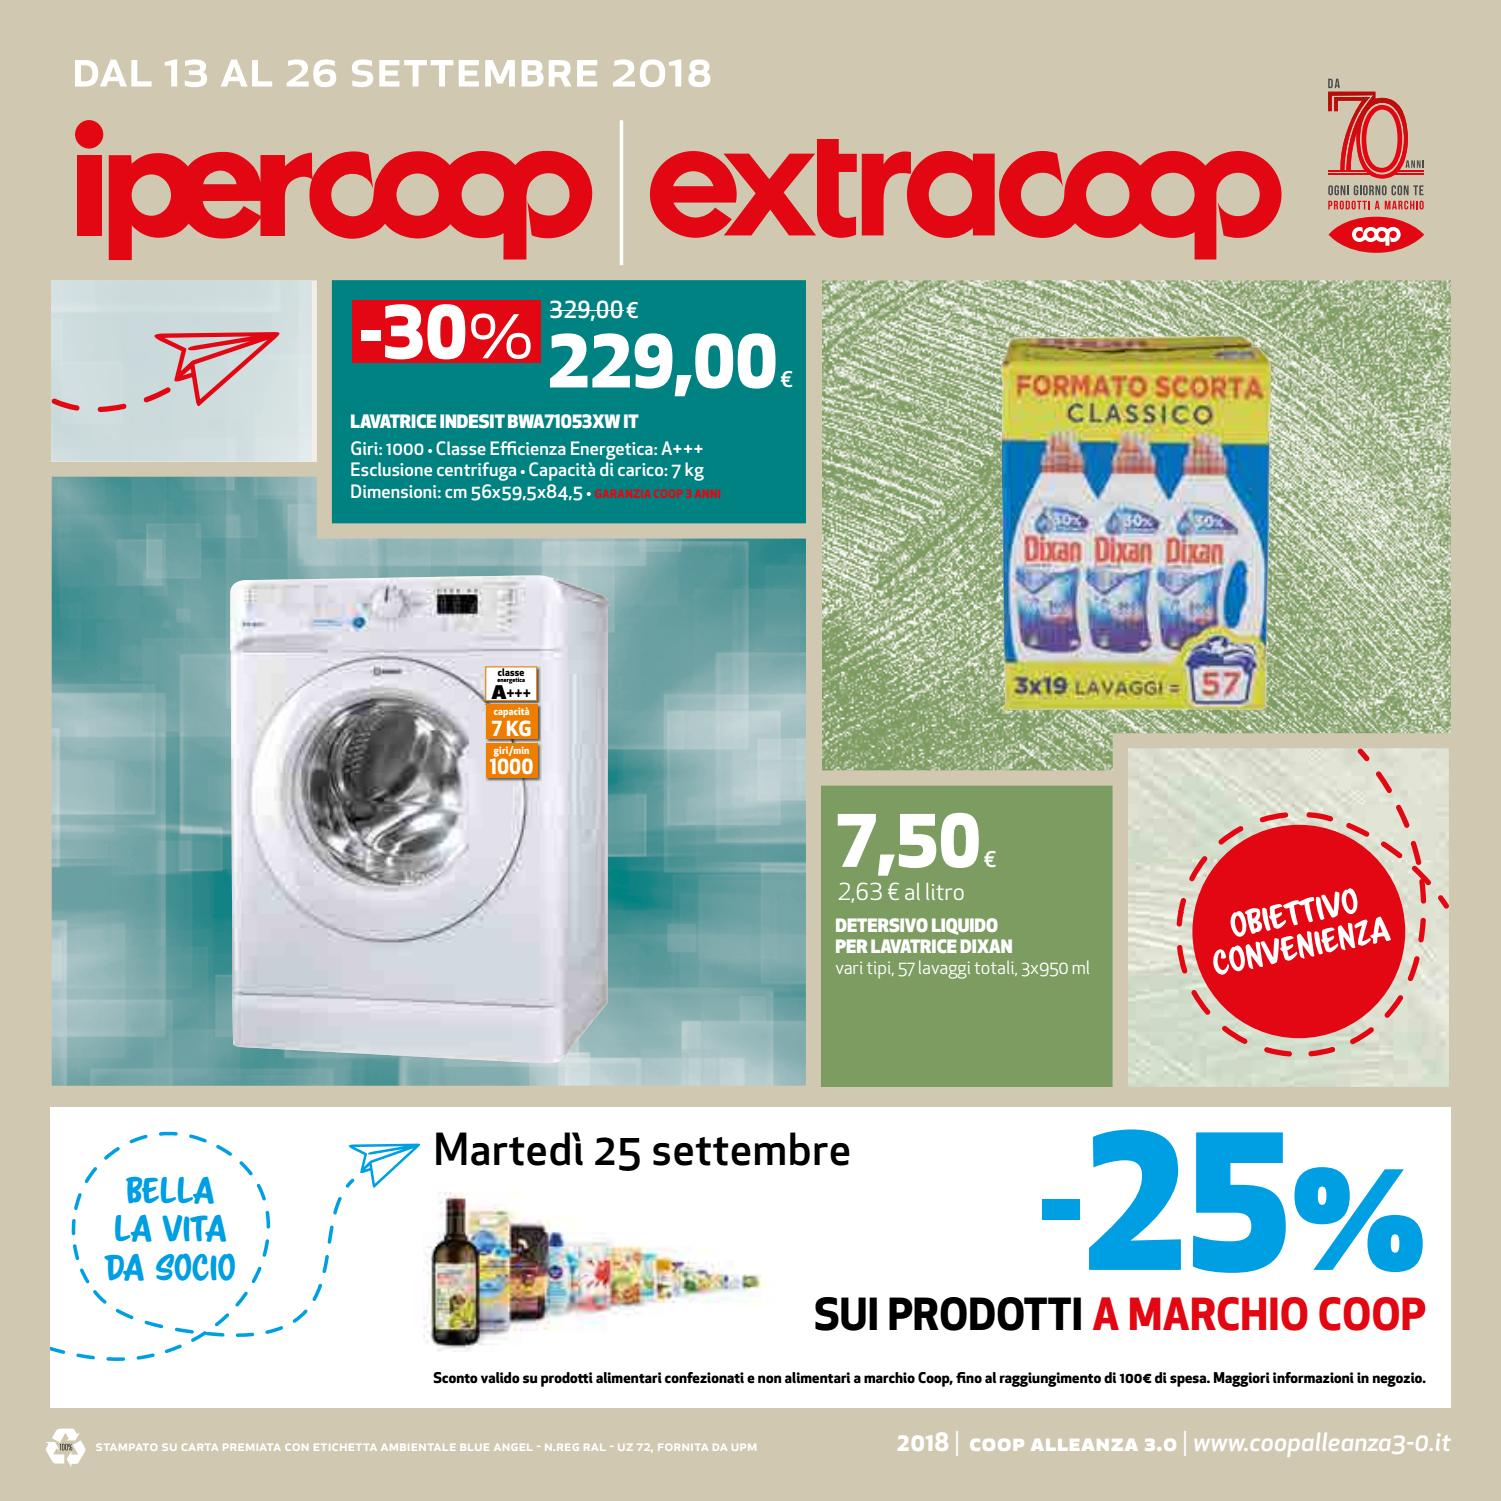 Tappeto Bambini Coop 52900 Ipmk Mo Re Pdf2058423461891967153 By Coop Alleanza 3 Issuu